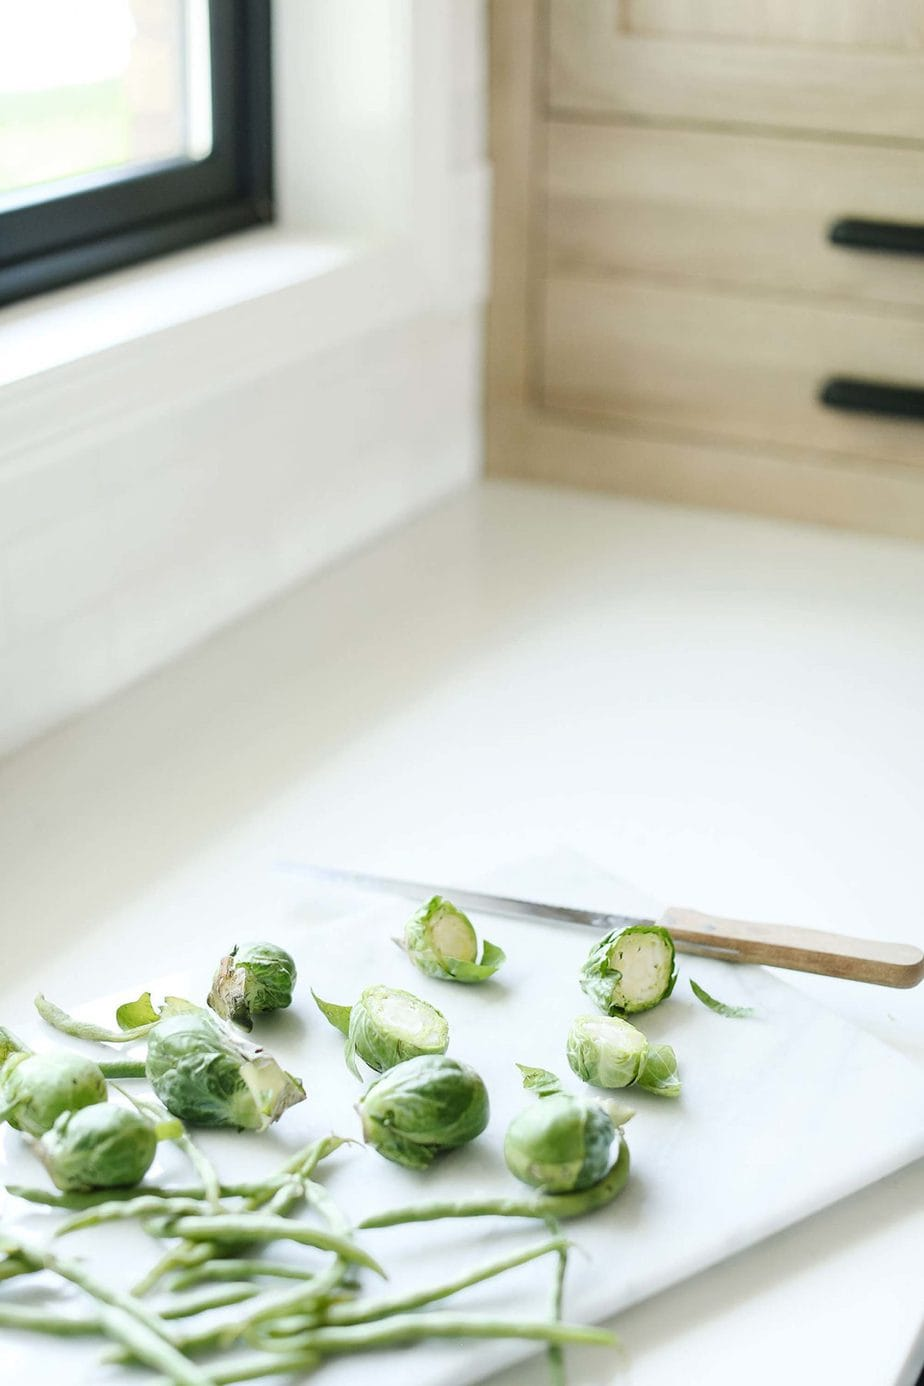 Tips for keeping your kitchen clean while preparing meals